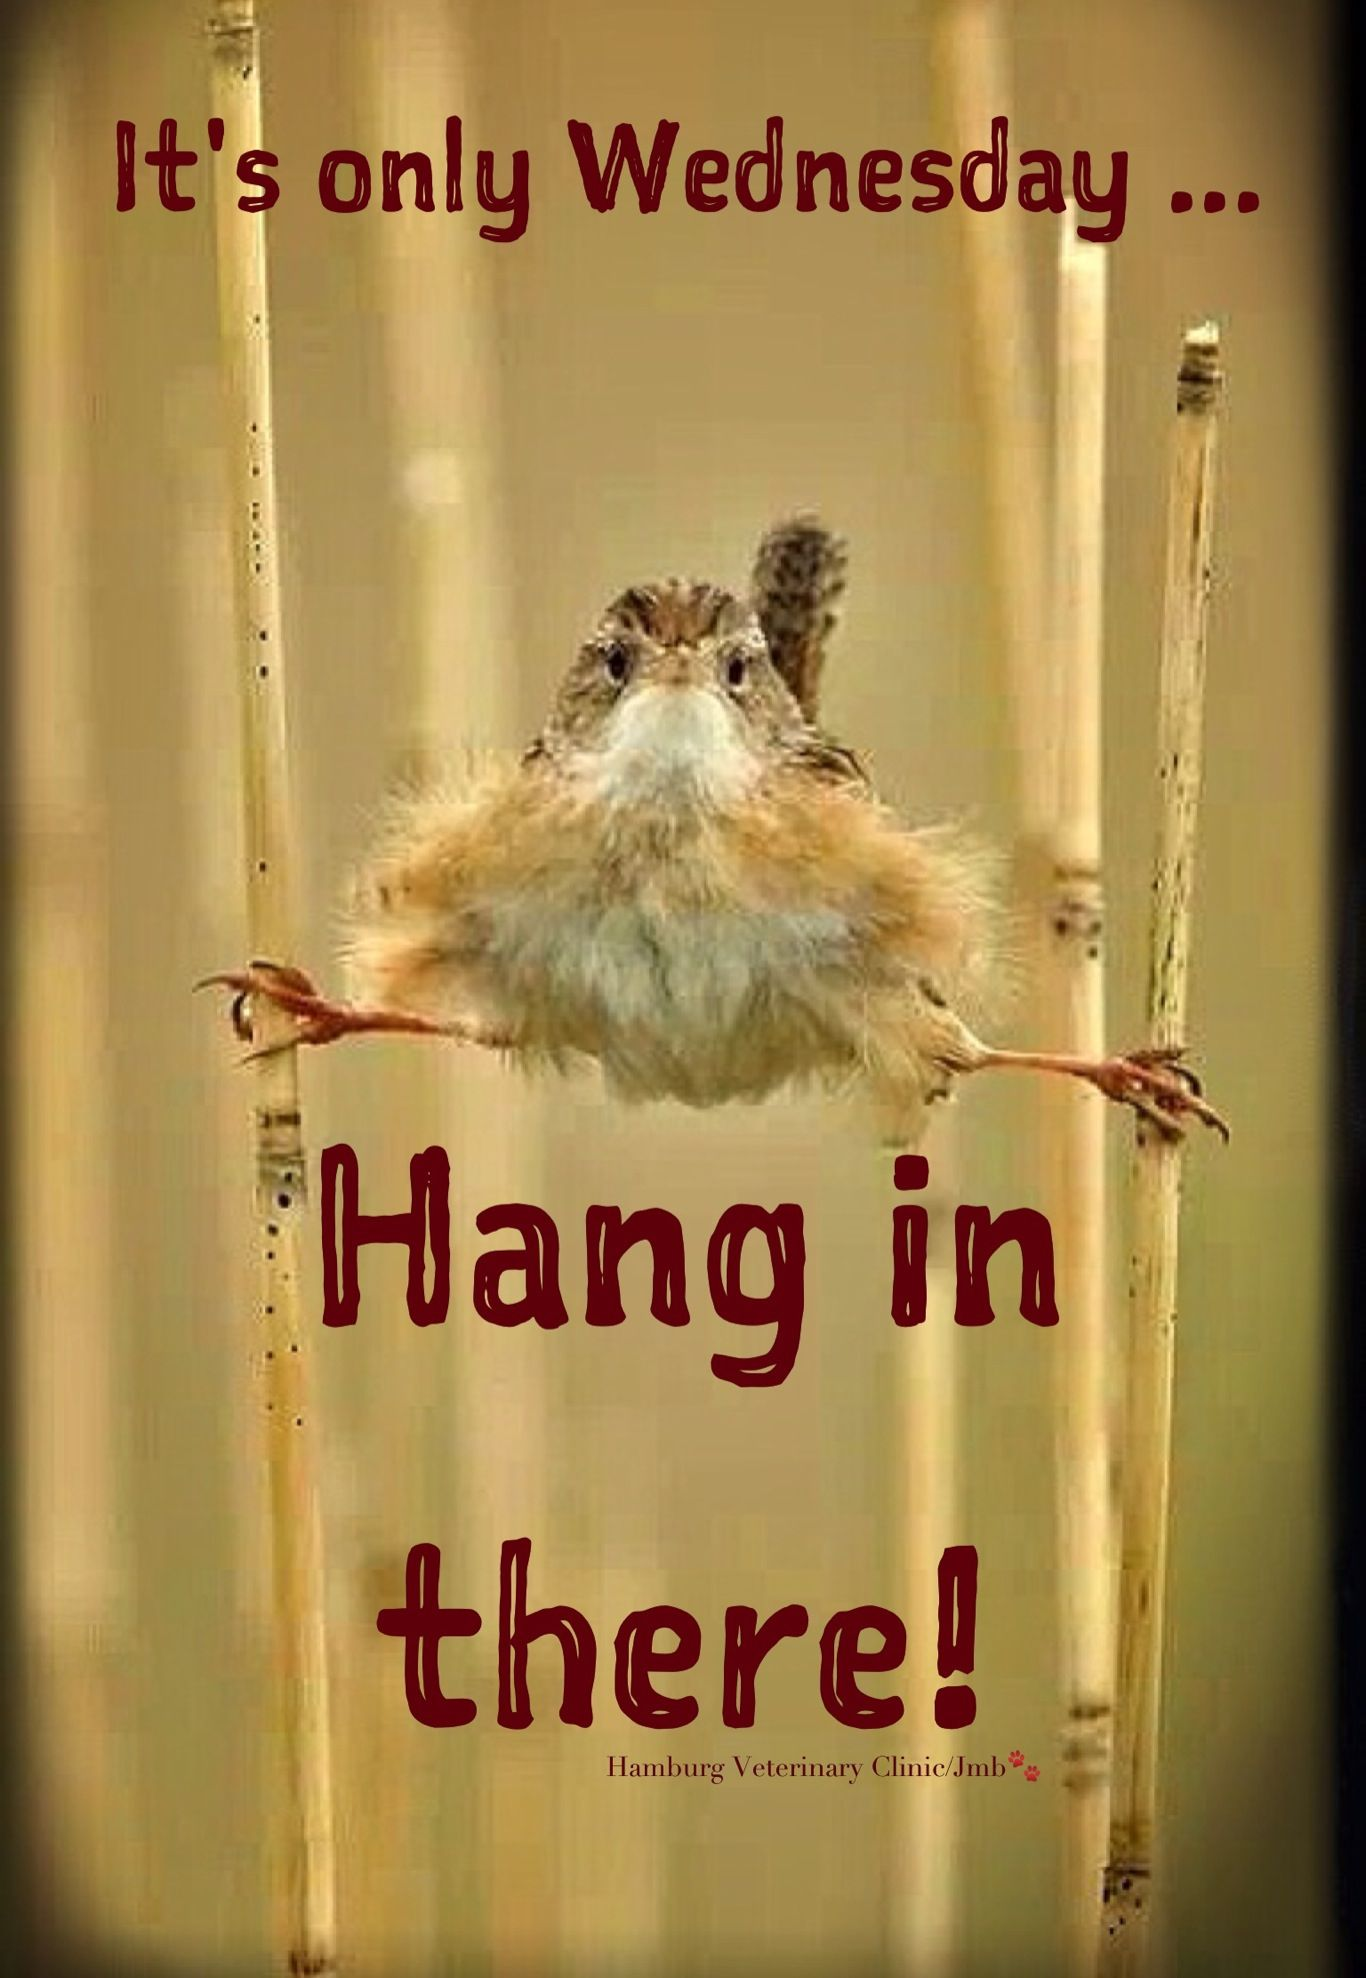 Funny Wednesday Quotes Wednesday Humor   Animal funny: Happy Wednesday! Hang in there  Funny Wednesday Quotes